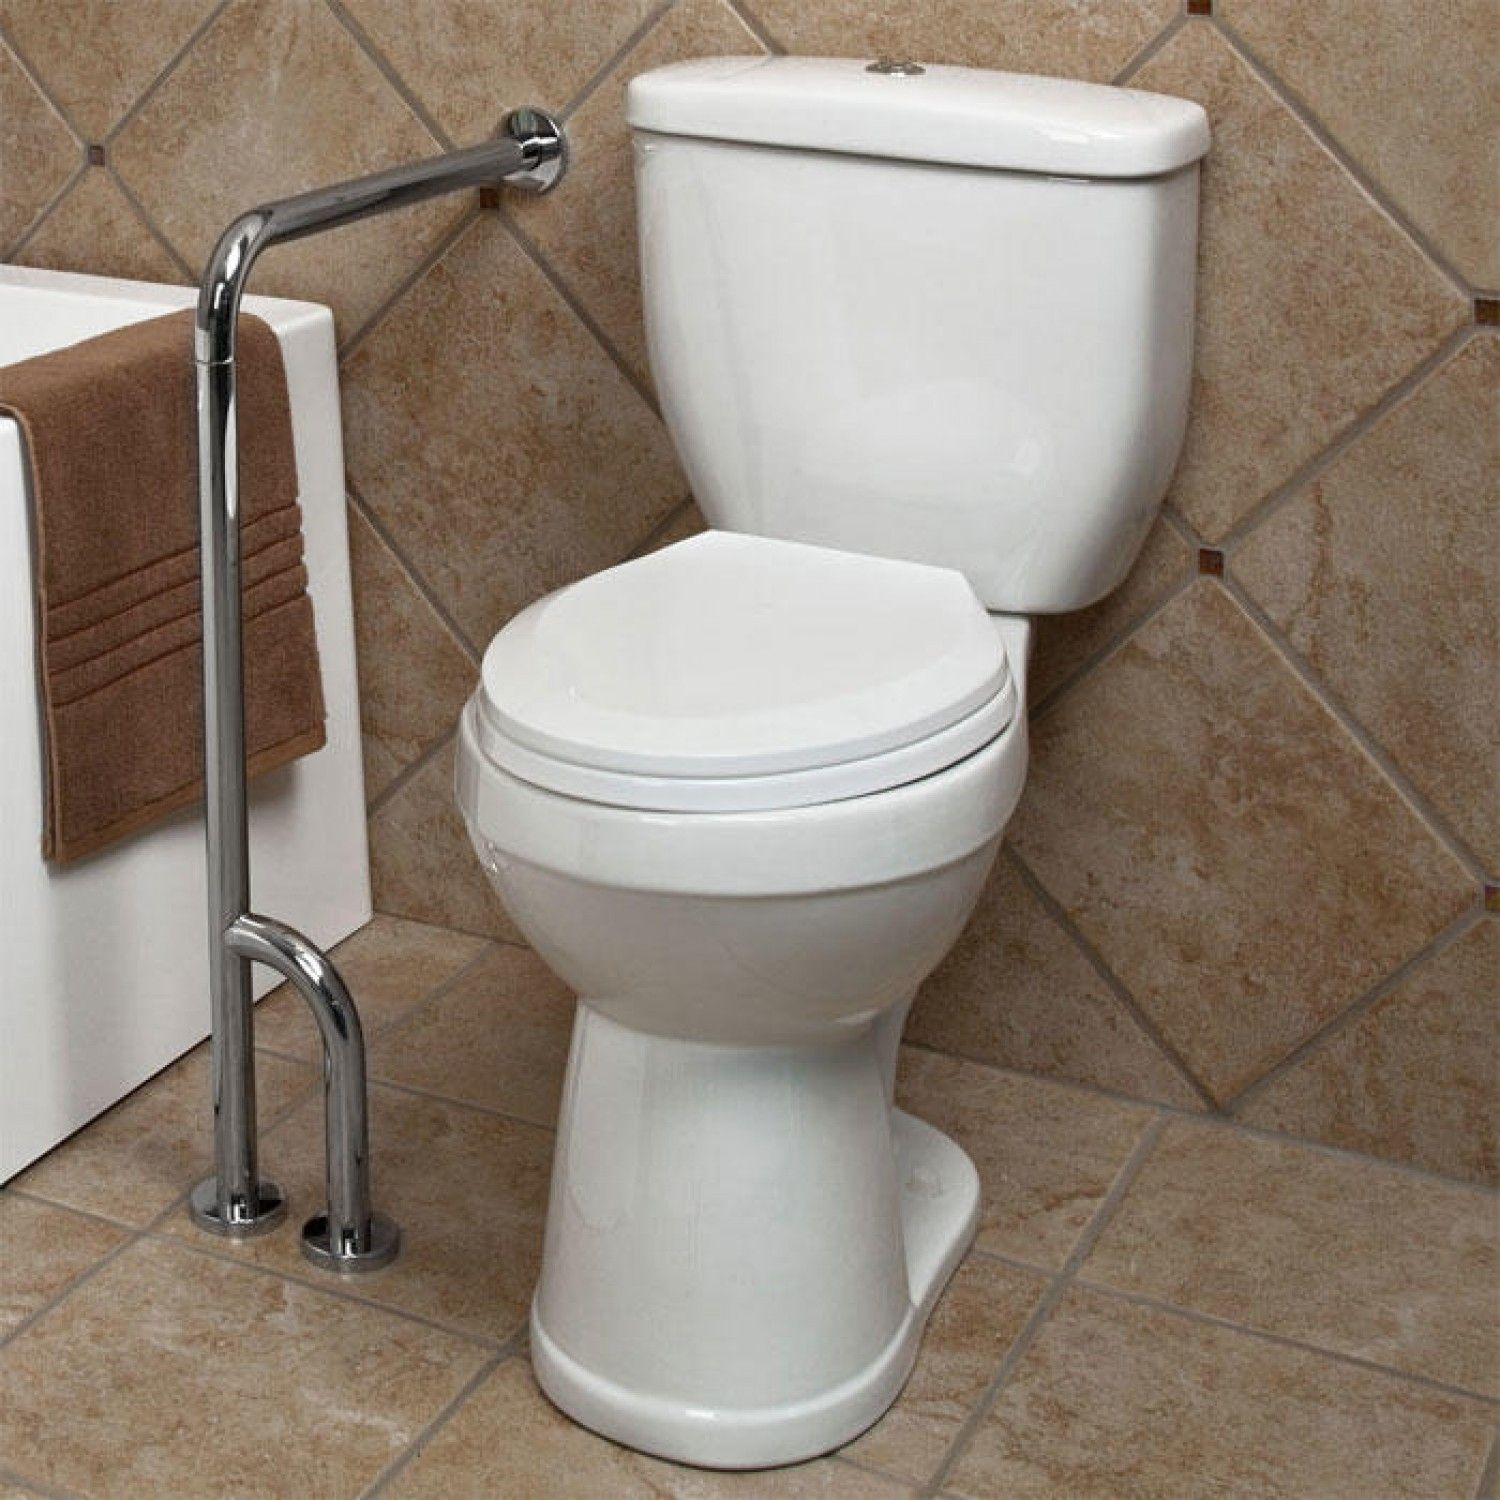 Attirant Pickens Wall To Floor Grab Bar Bathroom Pertaining To Dimensions 1500 X  1500 Floor Mounted Grab Bars For Bathrooms   This I